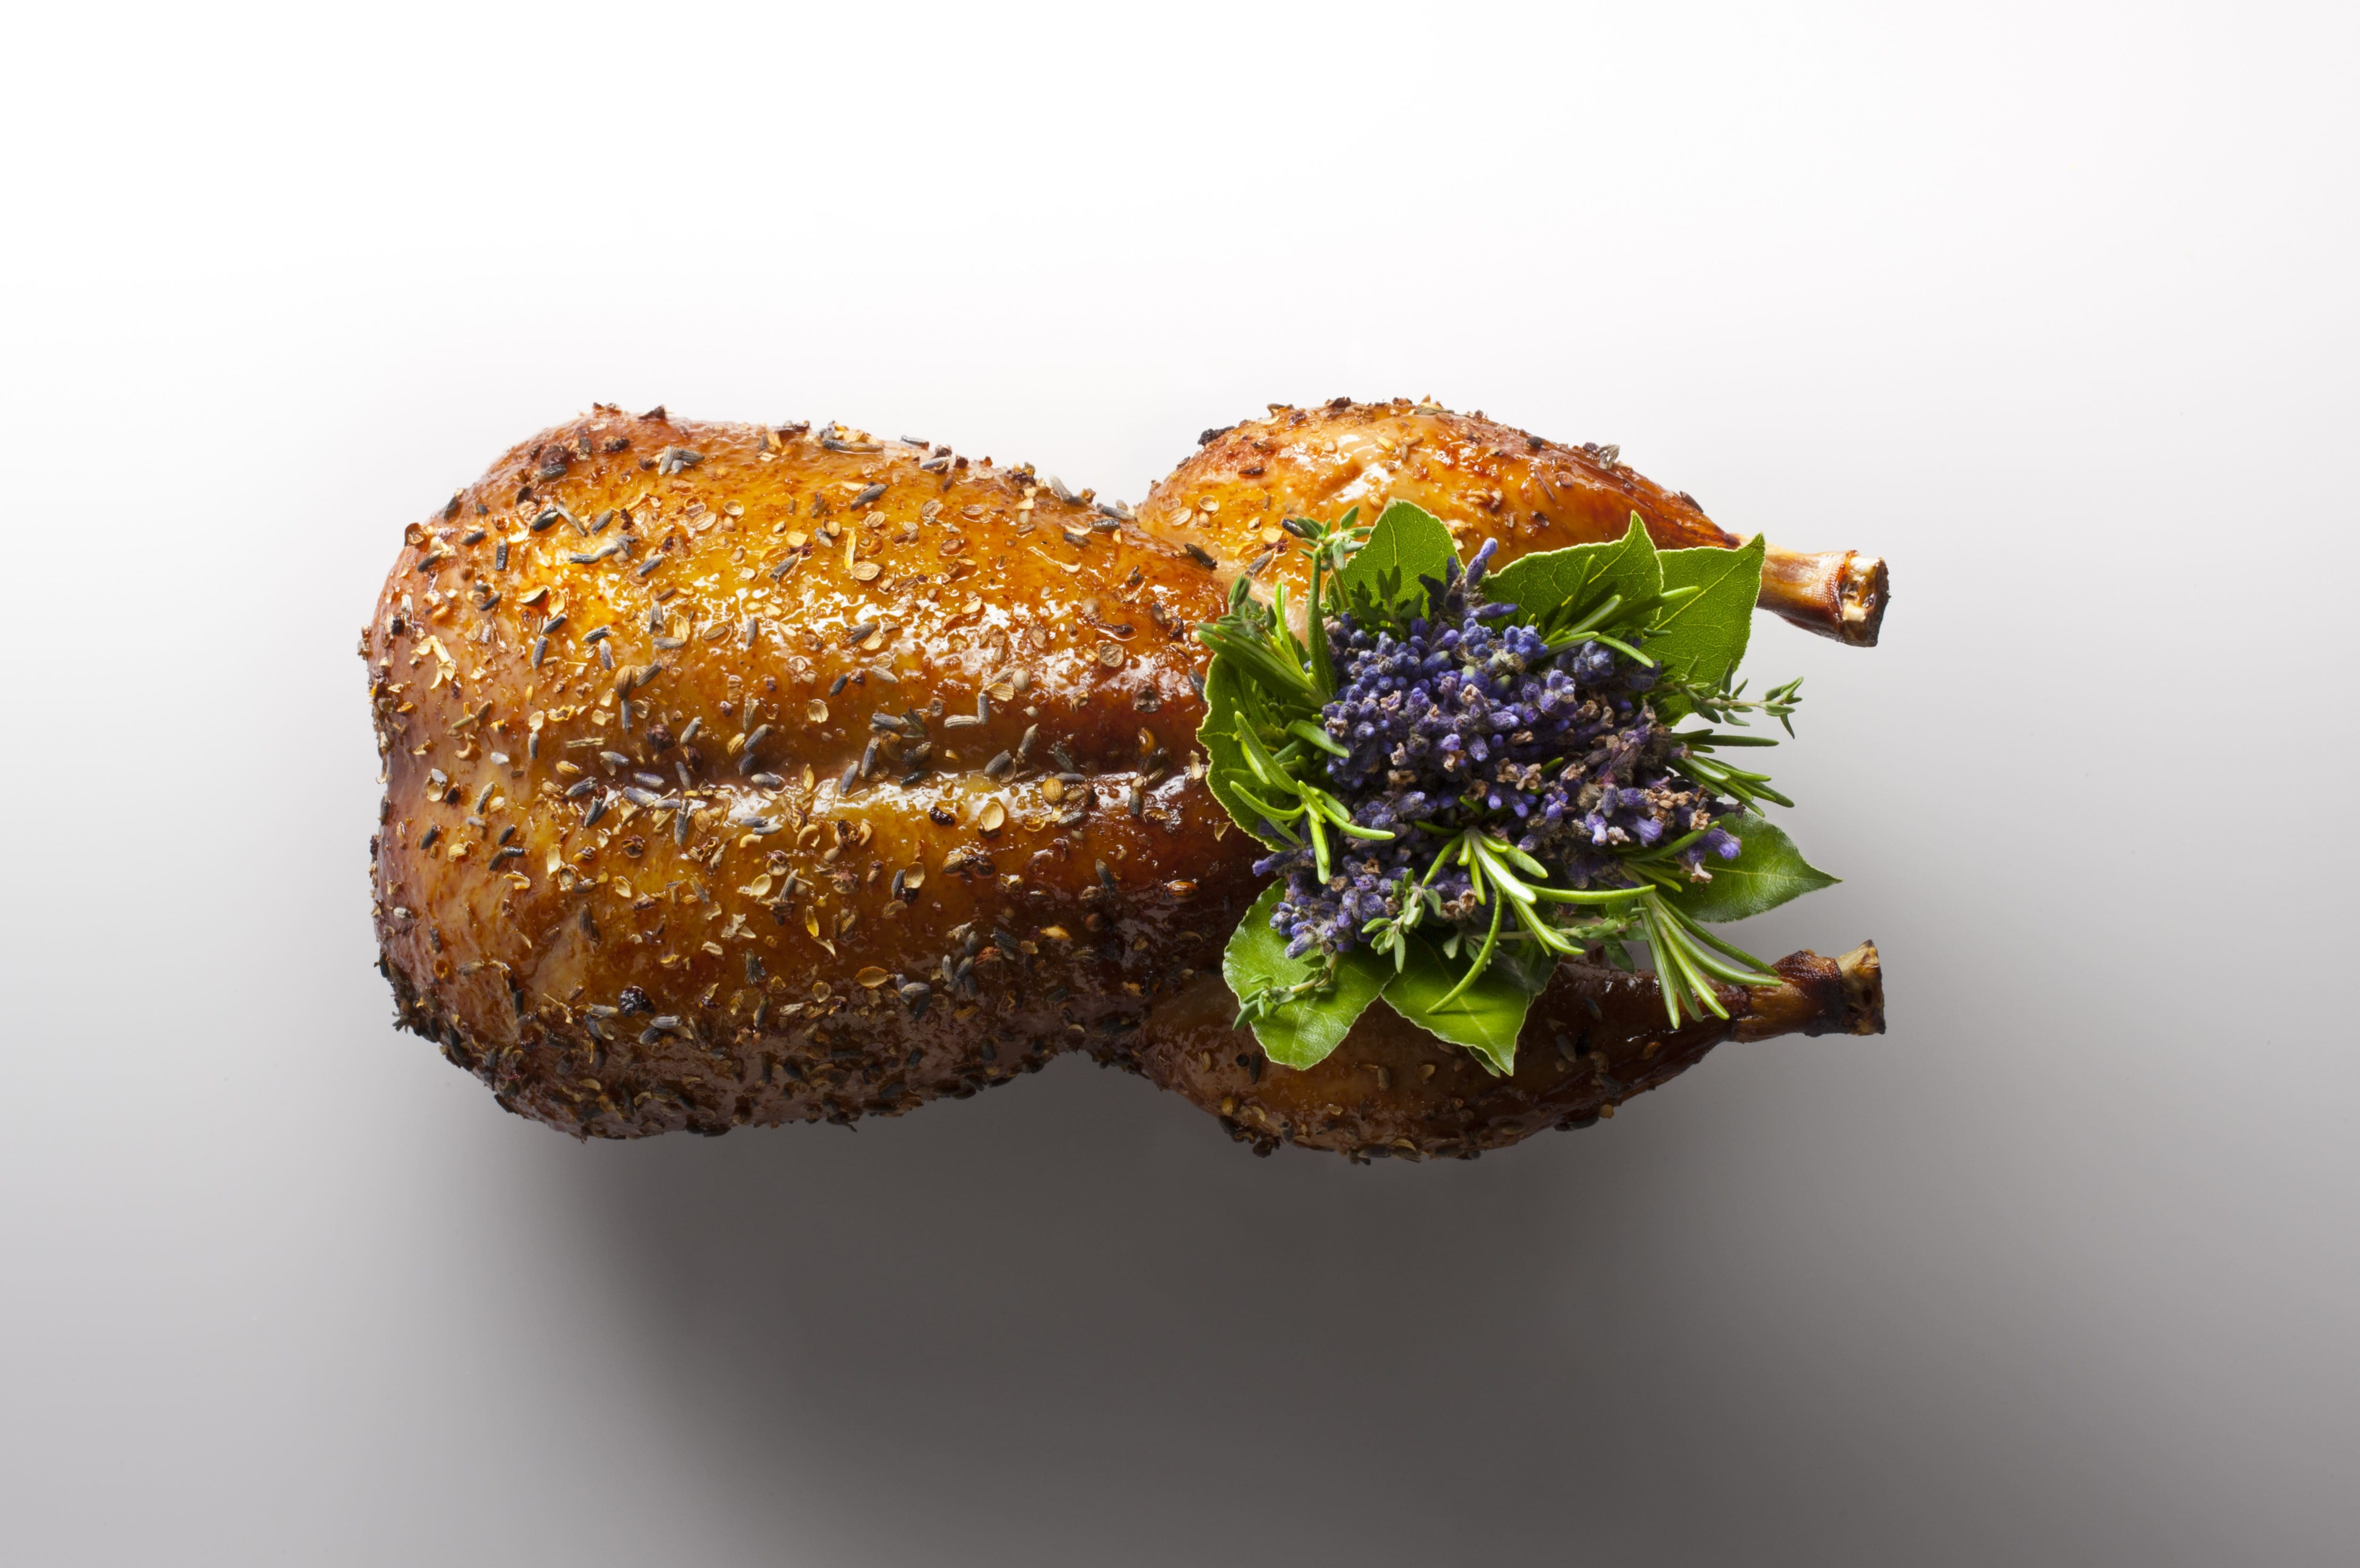 Dish at Eleven Madison Park – small roasted bird with green and purple floral decorations